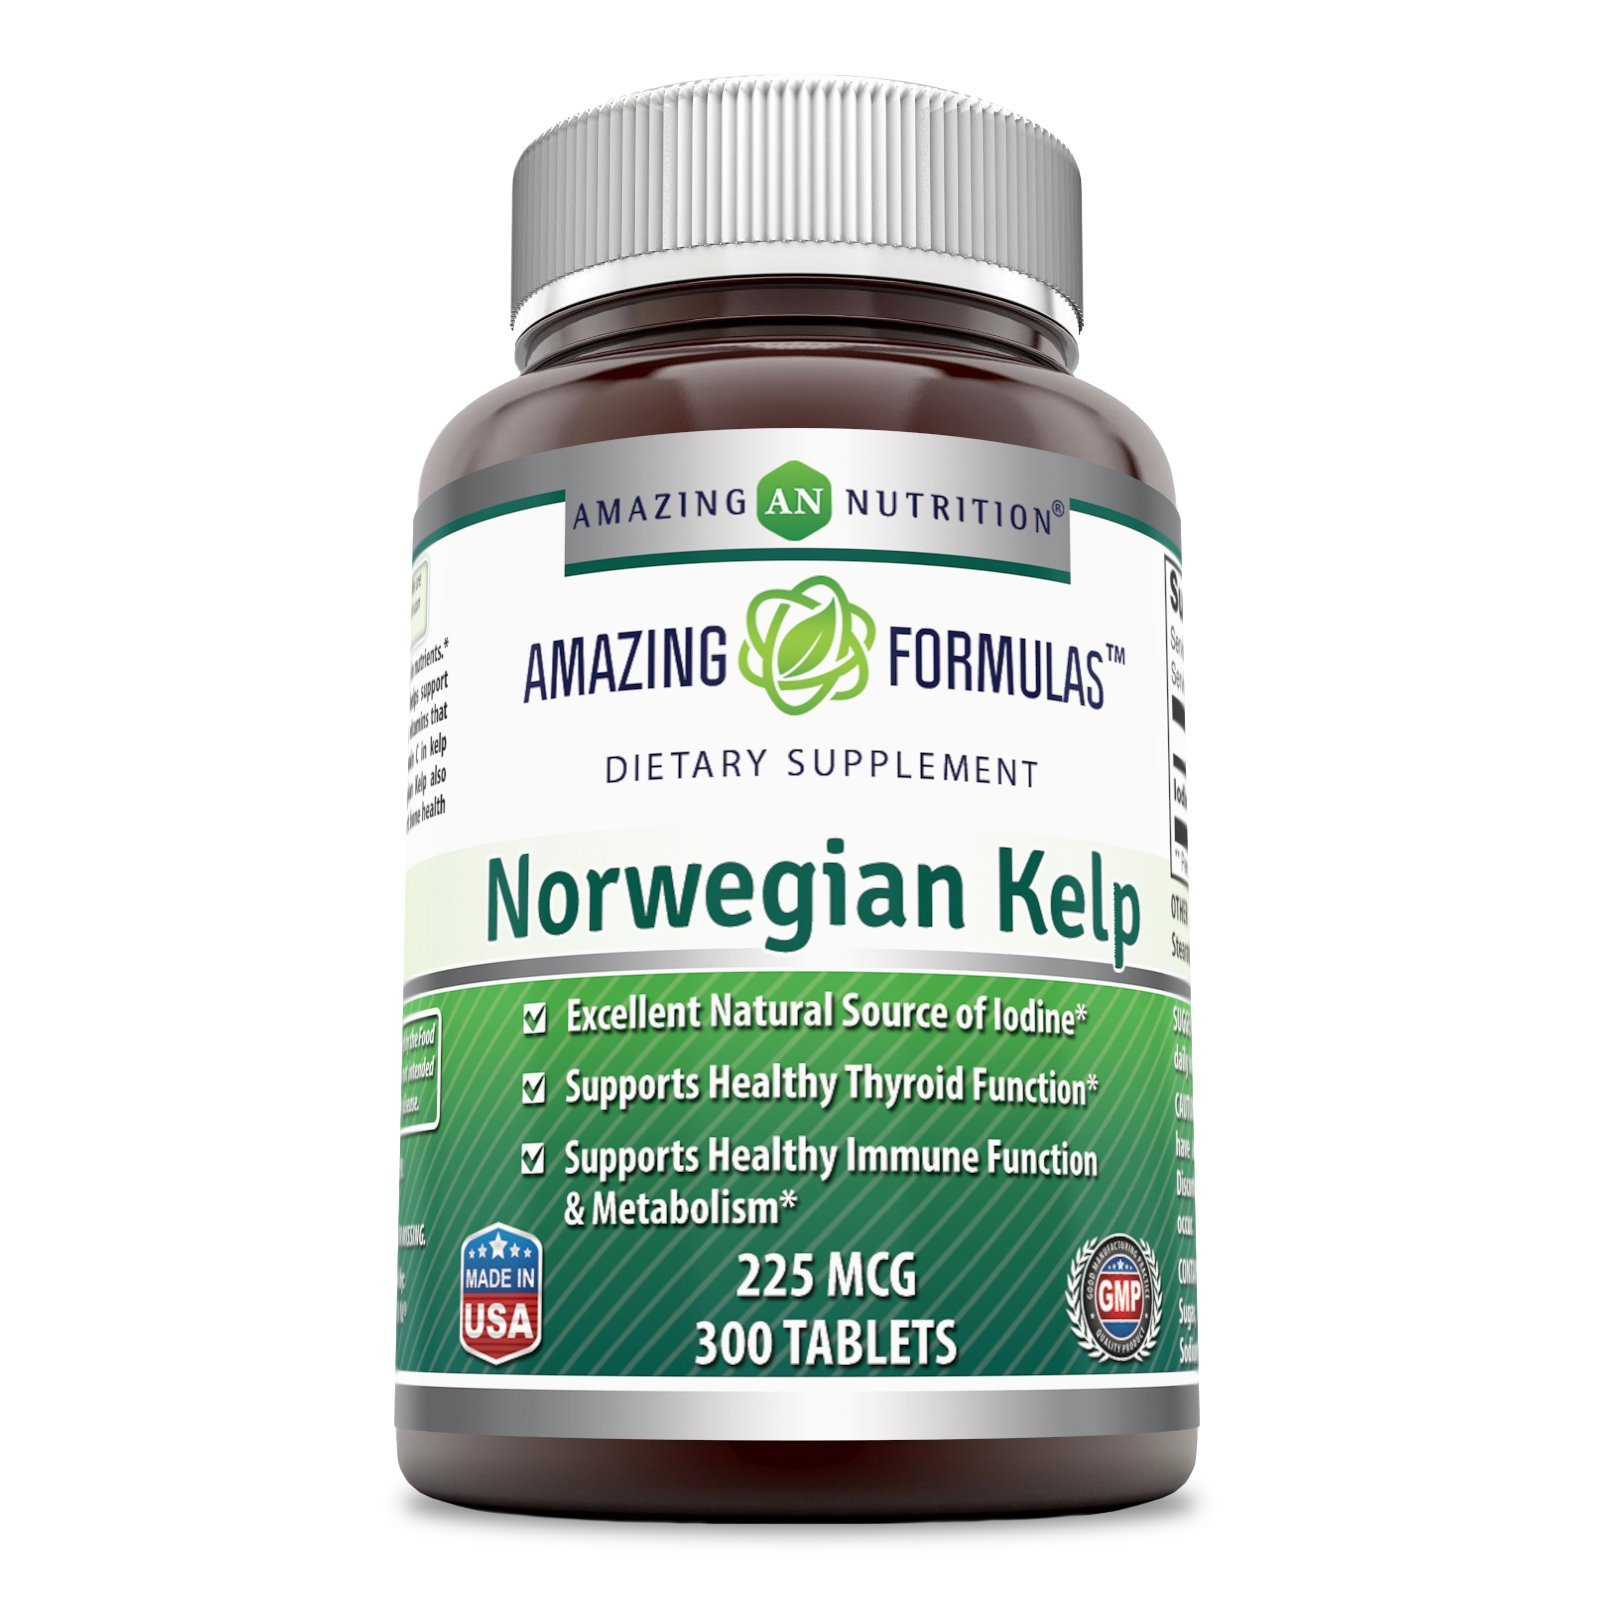 Amazing Formulas Norwegian Kelp 225 Mg 300 tablets - Excellent Natural Source of Iodine - Support healthy thyroid function and Immune System health